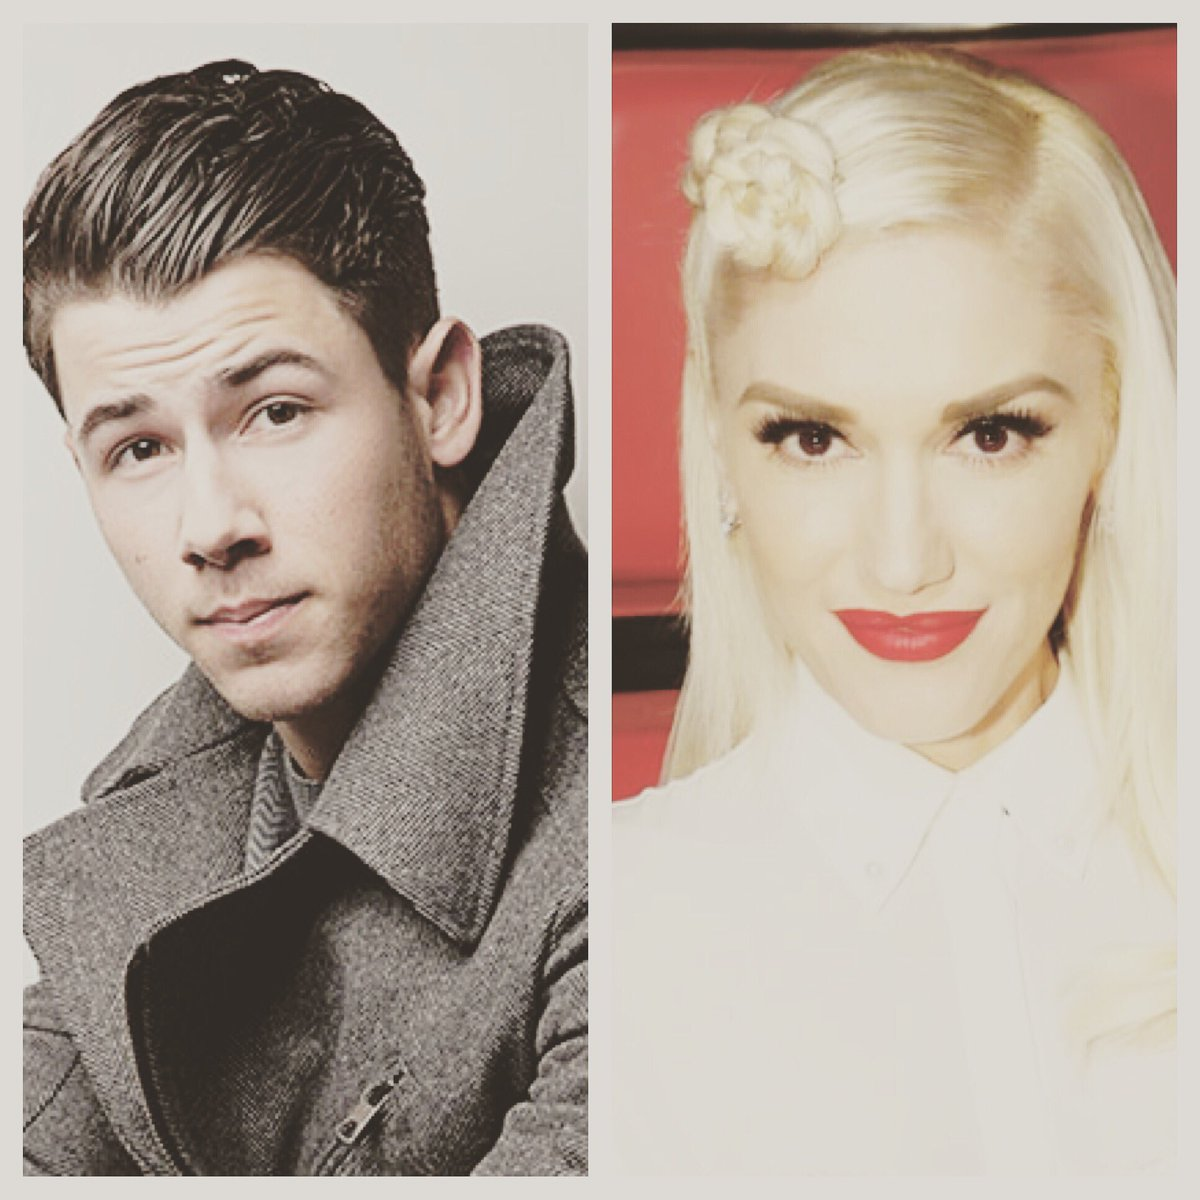 Big day on my show today! Nick Jonas + Gwen Stefani are both calling - win tickets to both shows! Keep it on Mix!